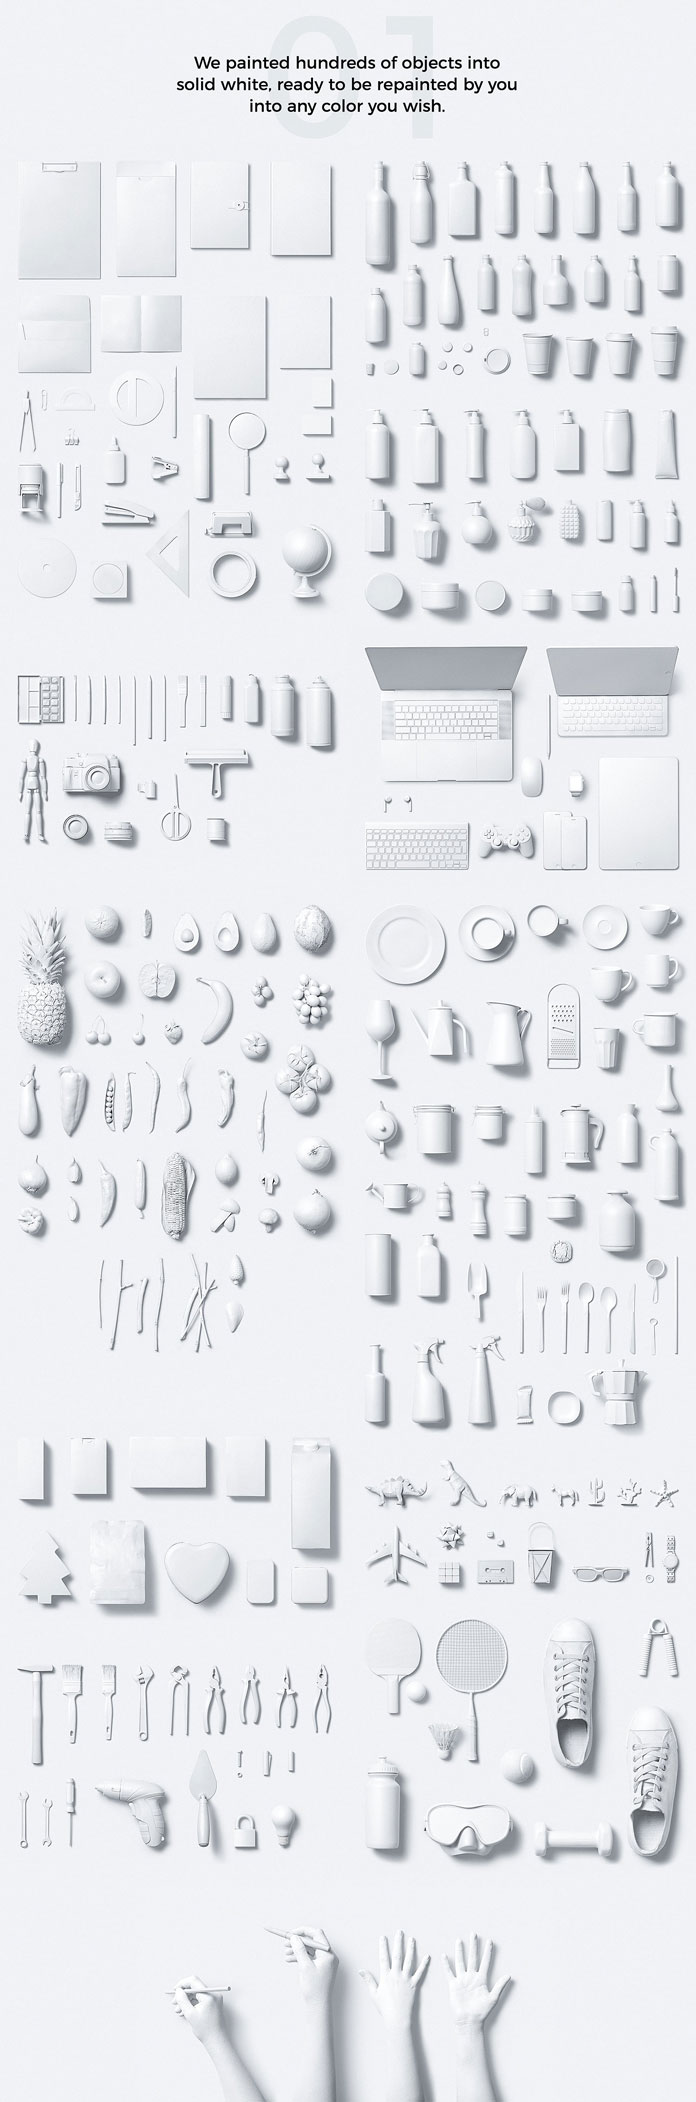 Hundreds of objects painted into solid white.